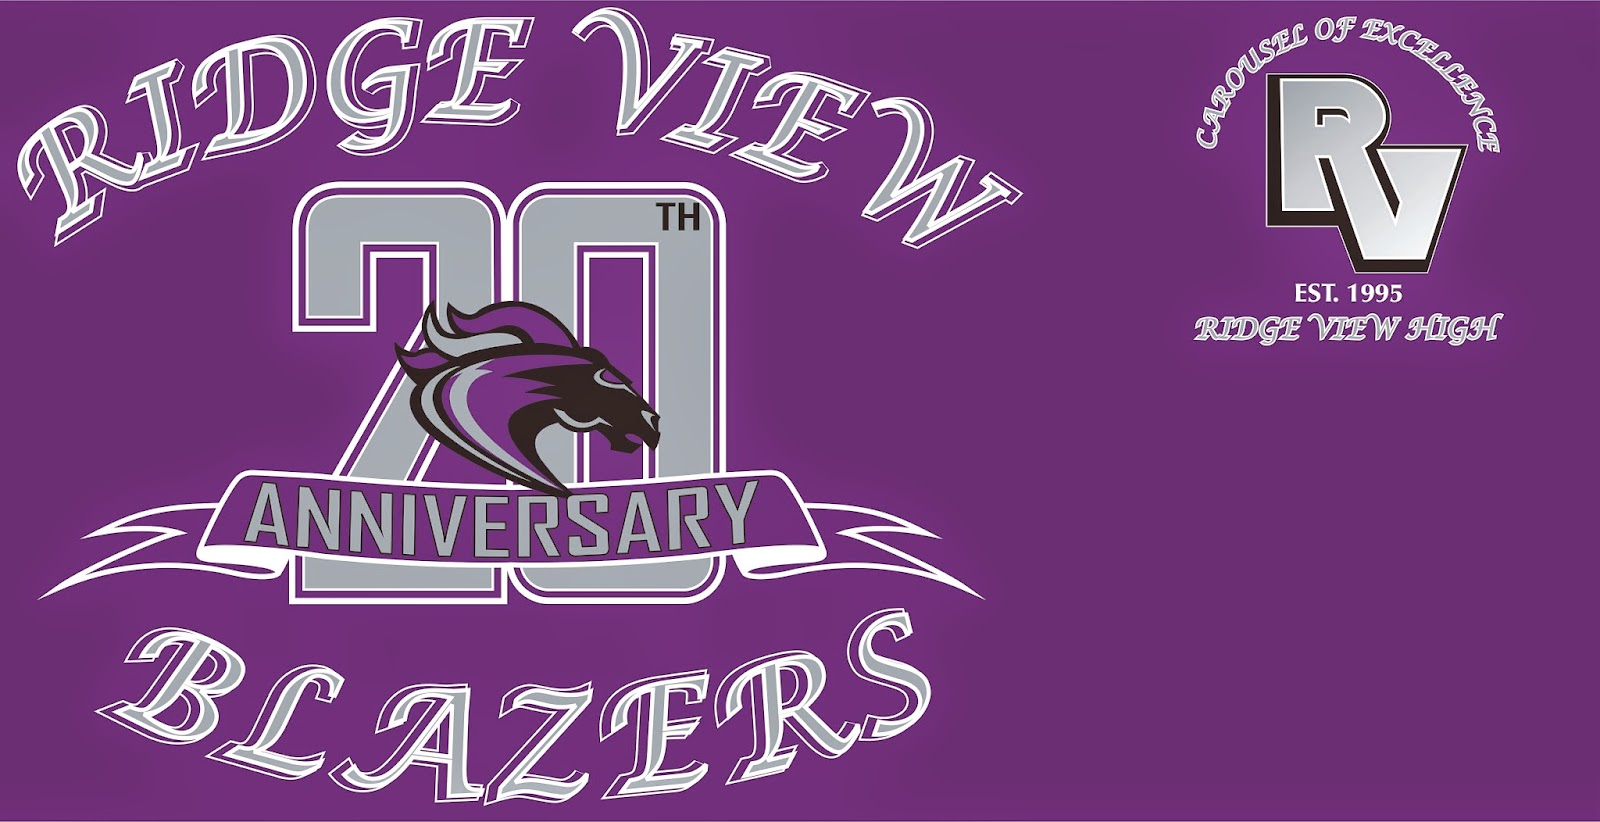 Shirt design for alumni homecoming - Check Out Our 20th Anniversary Homecoming T Shirt Design The Design On The Left Side Is On The Back Of The Shirt And The Logo On The Right Will Be On The